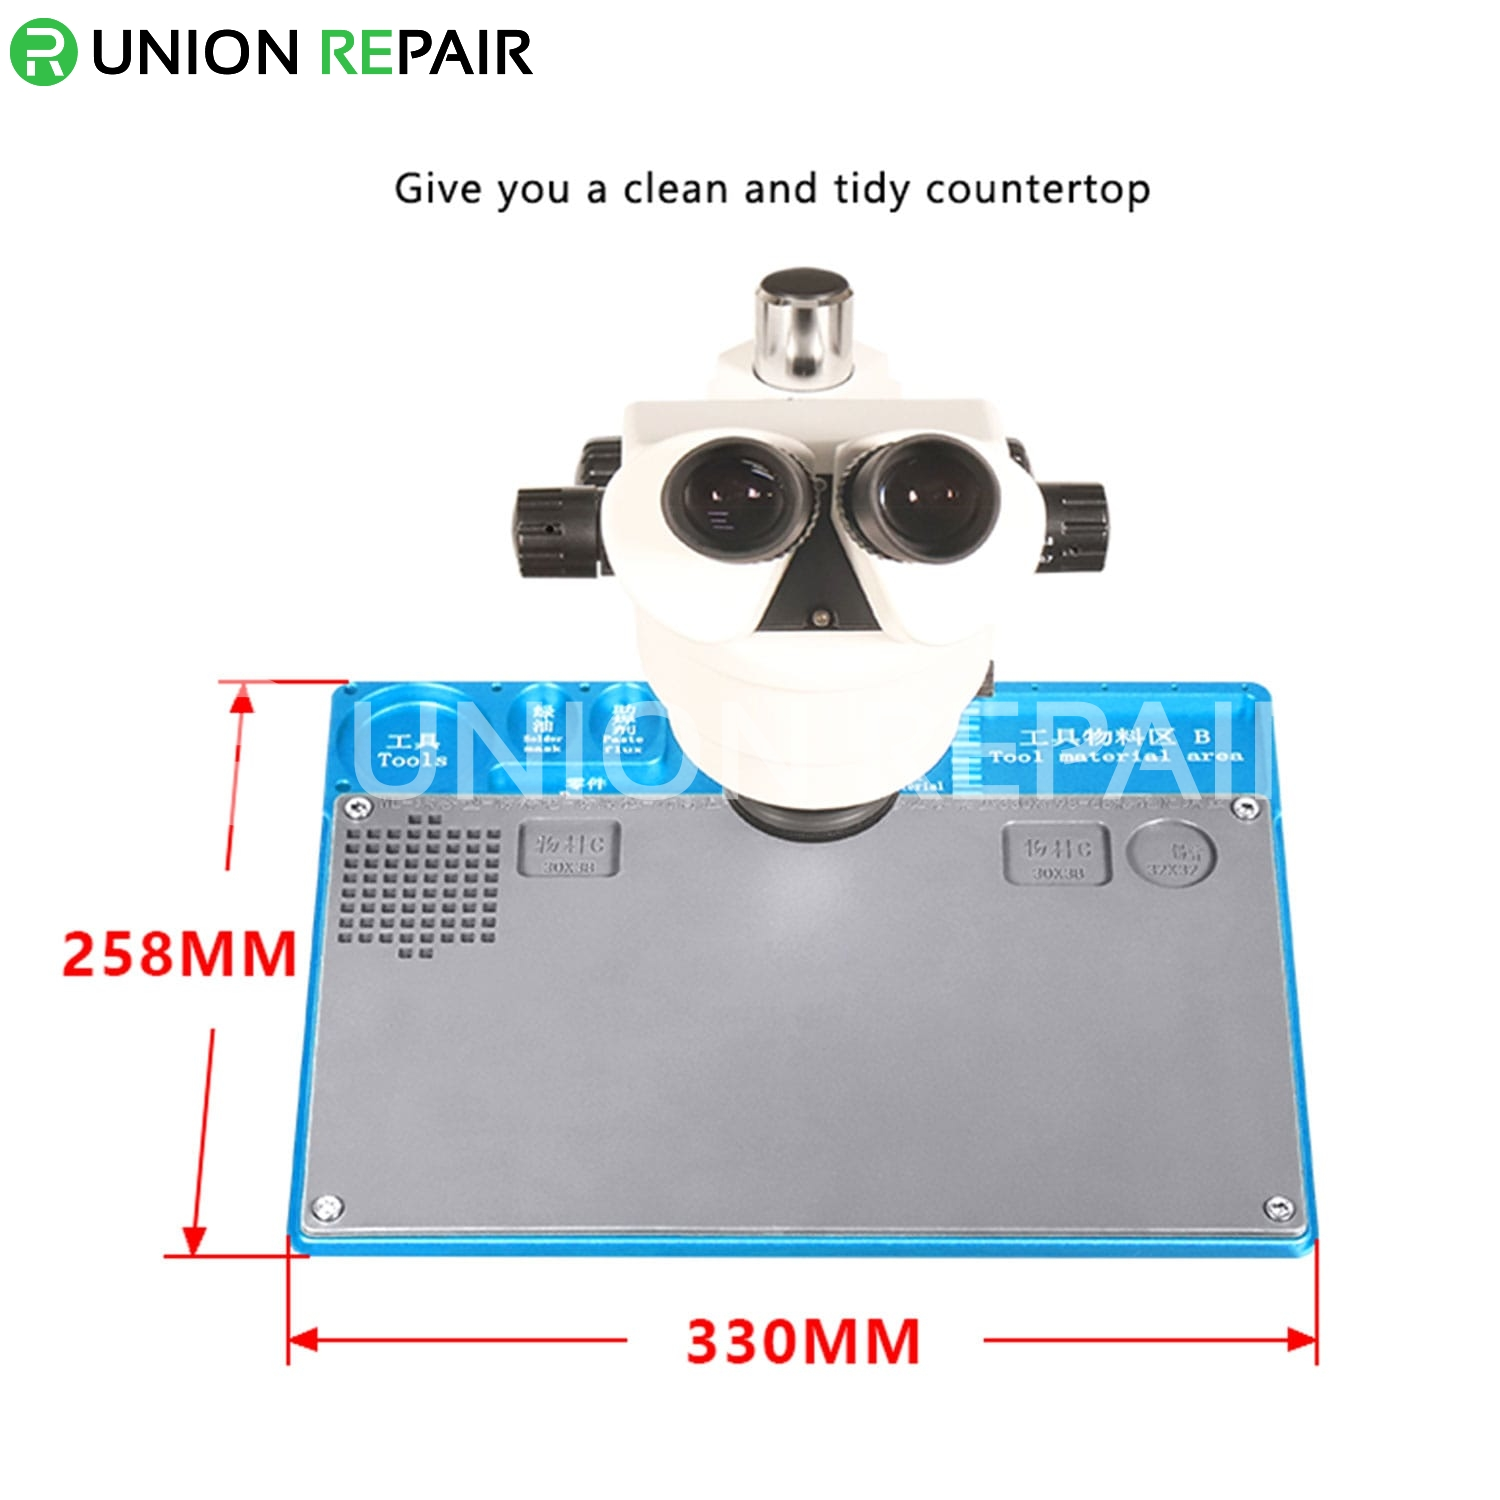 WL Aluminium Alloy Maintenance Platform 330mm x 198mm